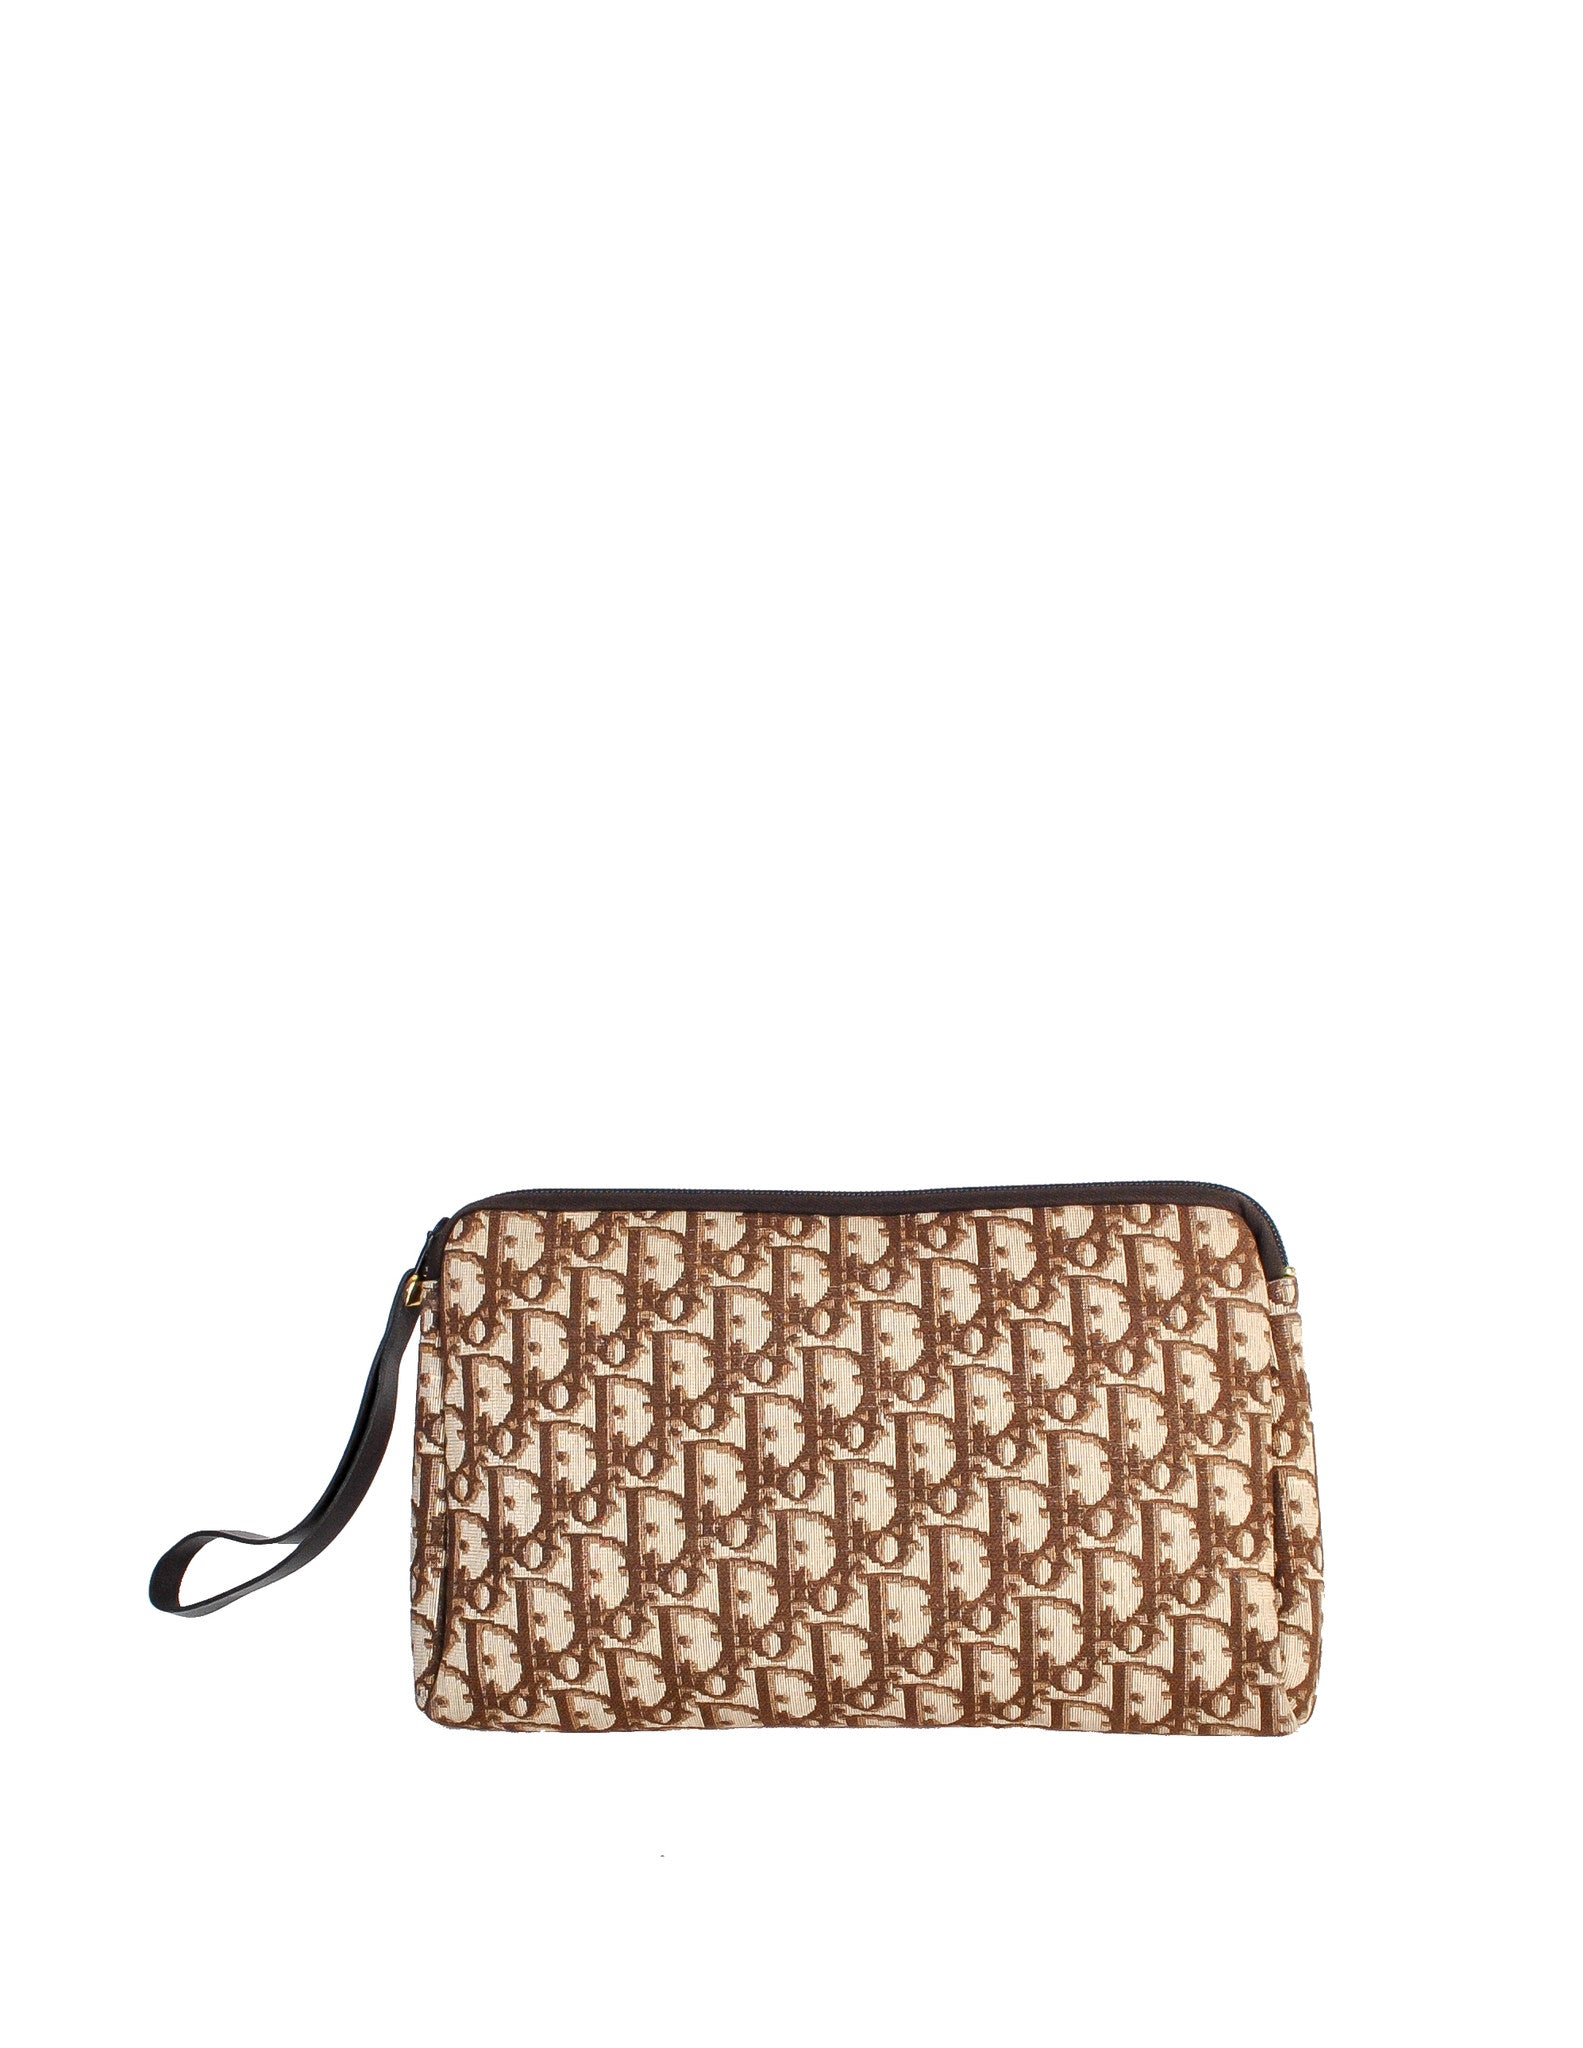 Christian Dior Vintage Brown Monogram Clutch Bag - Amarcord Vintage Fashion  - 1